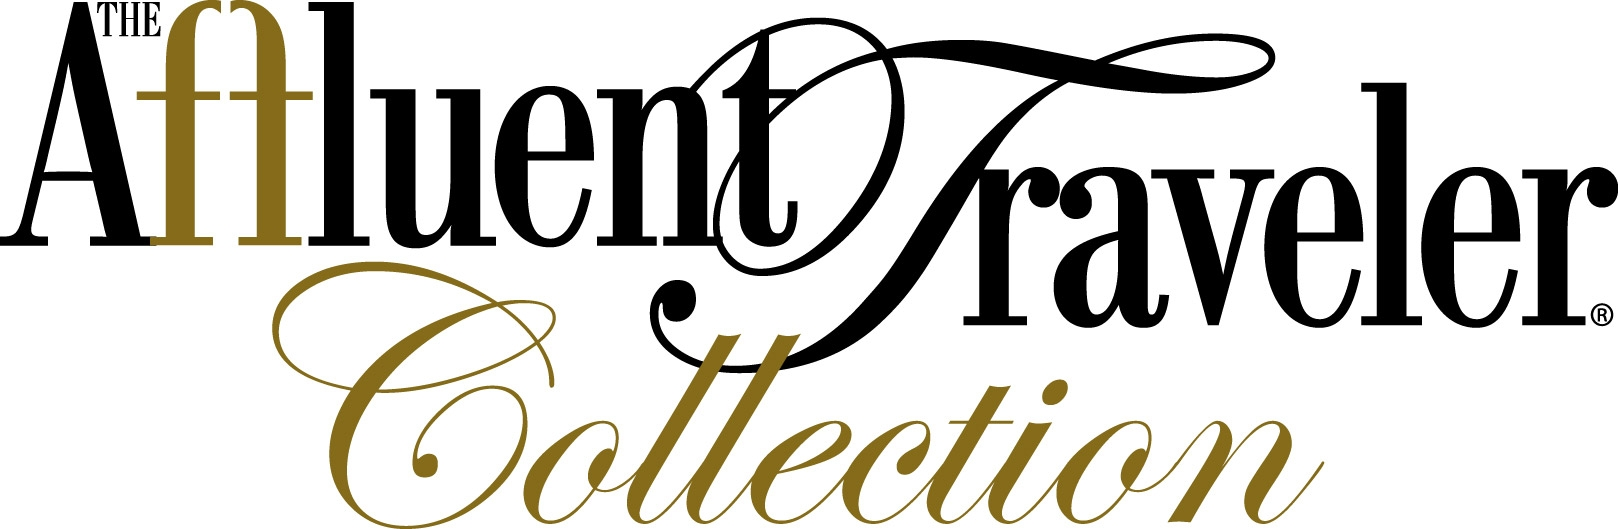 The Affluent Traveler Collection Member